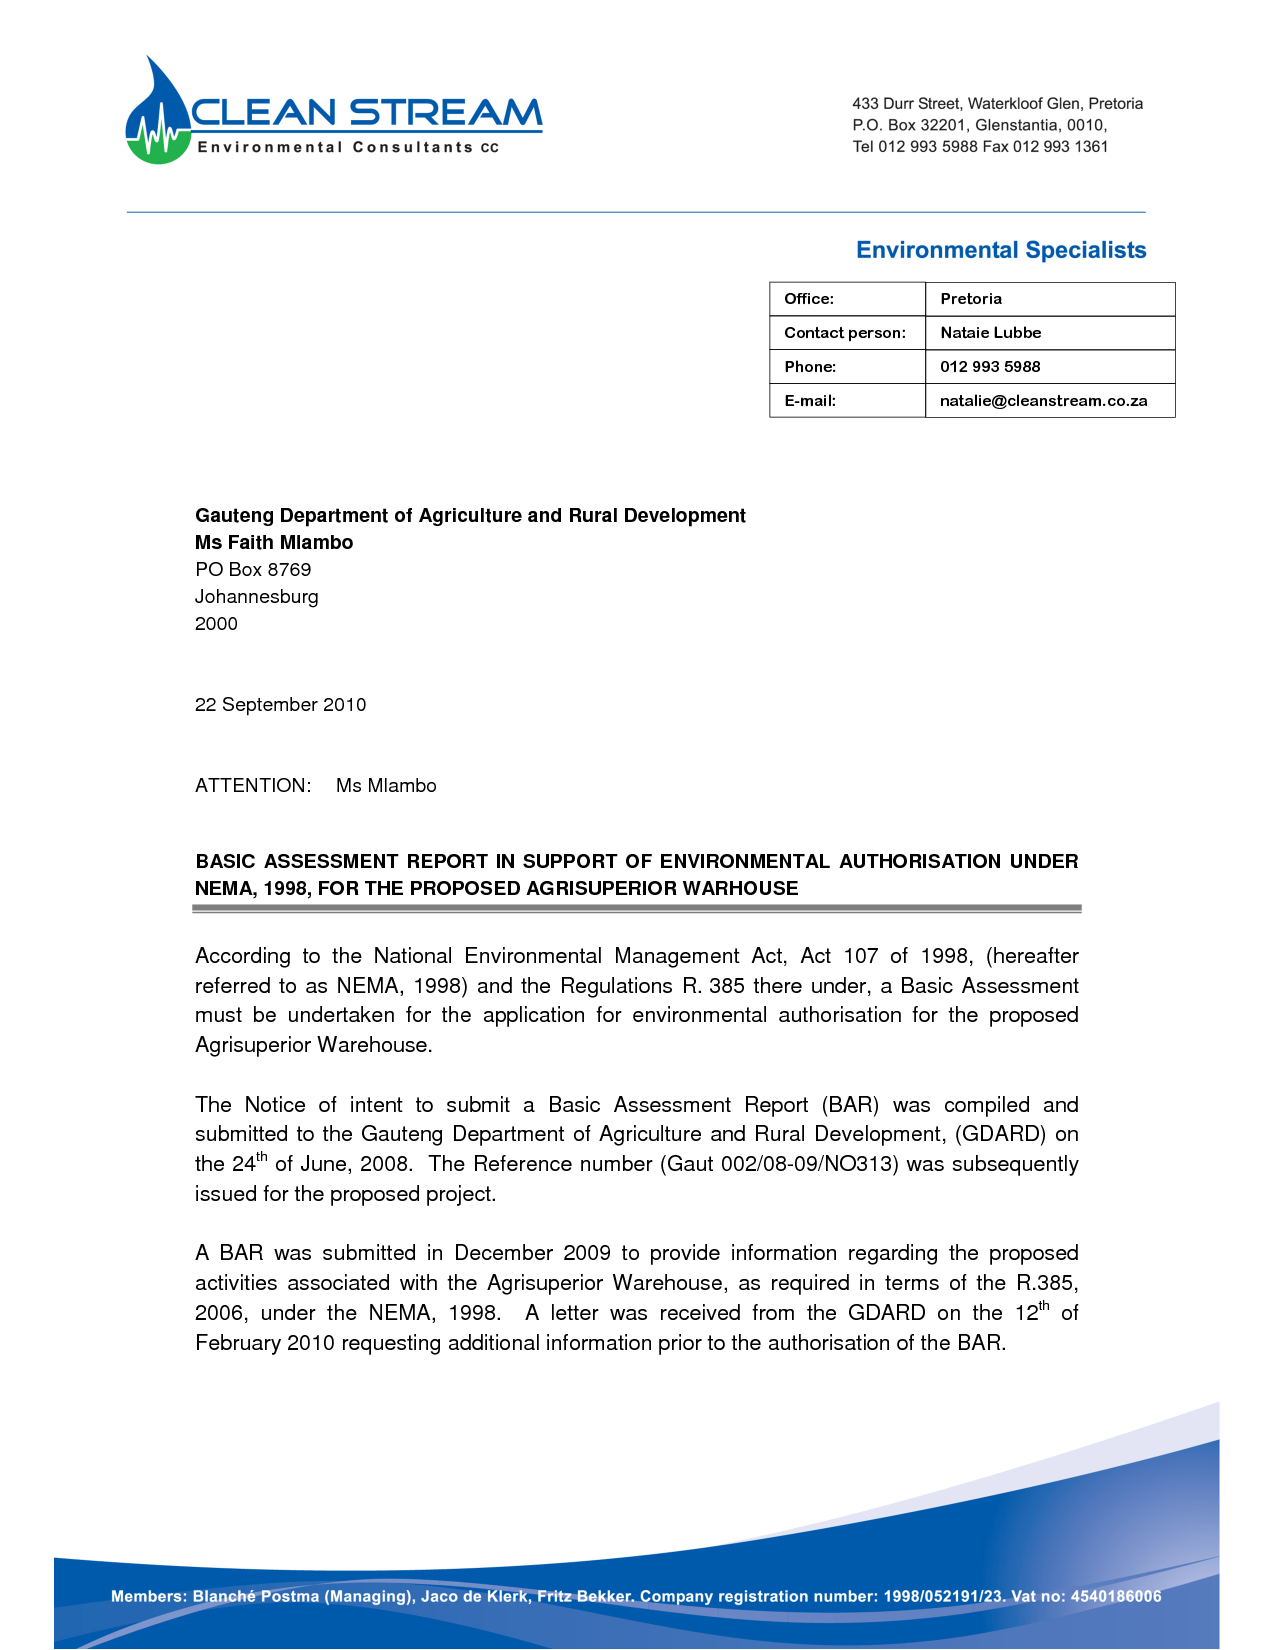 Cover Letter Template Microsoft Word 2010 Click Here For A With Microsoft Word Business Letter Template